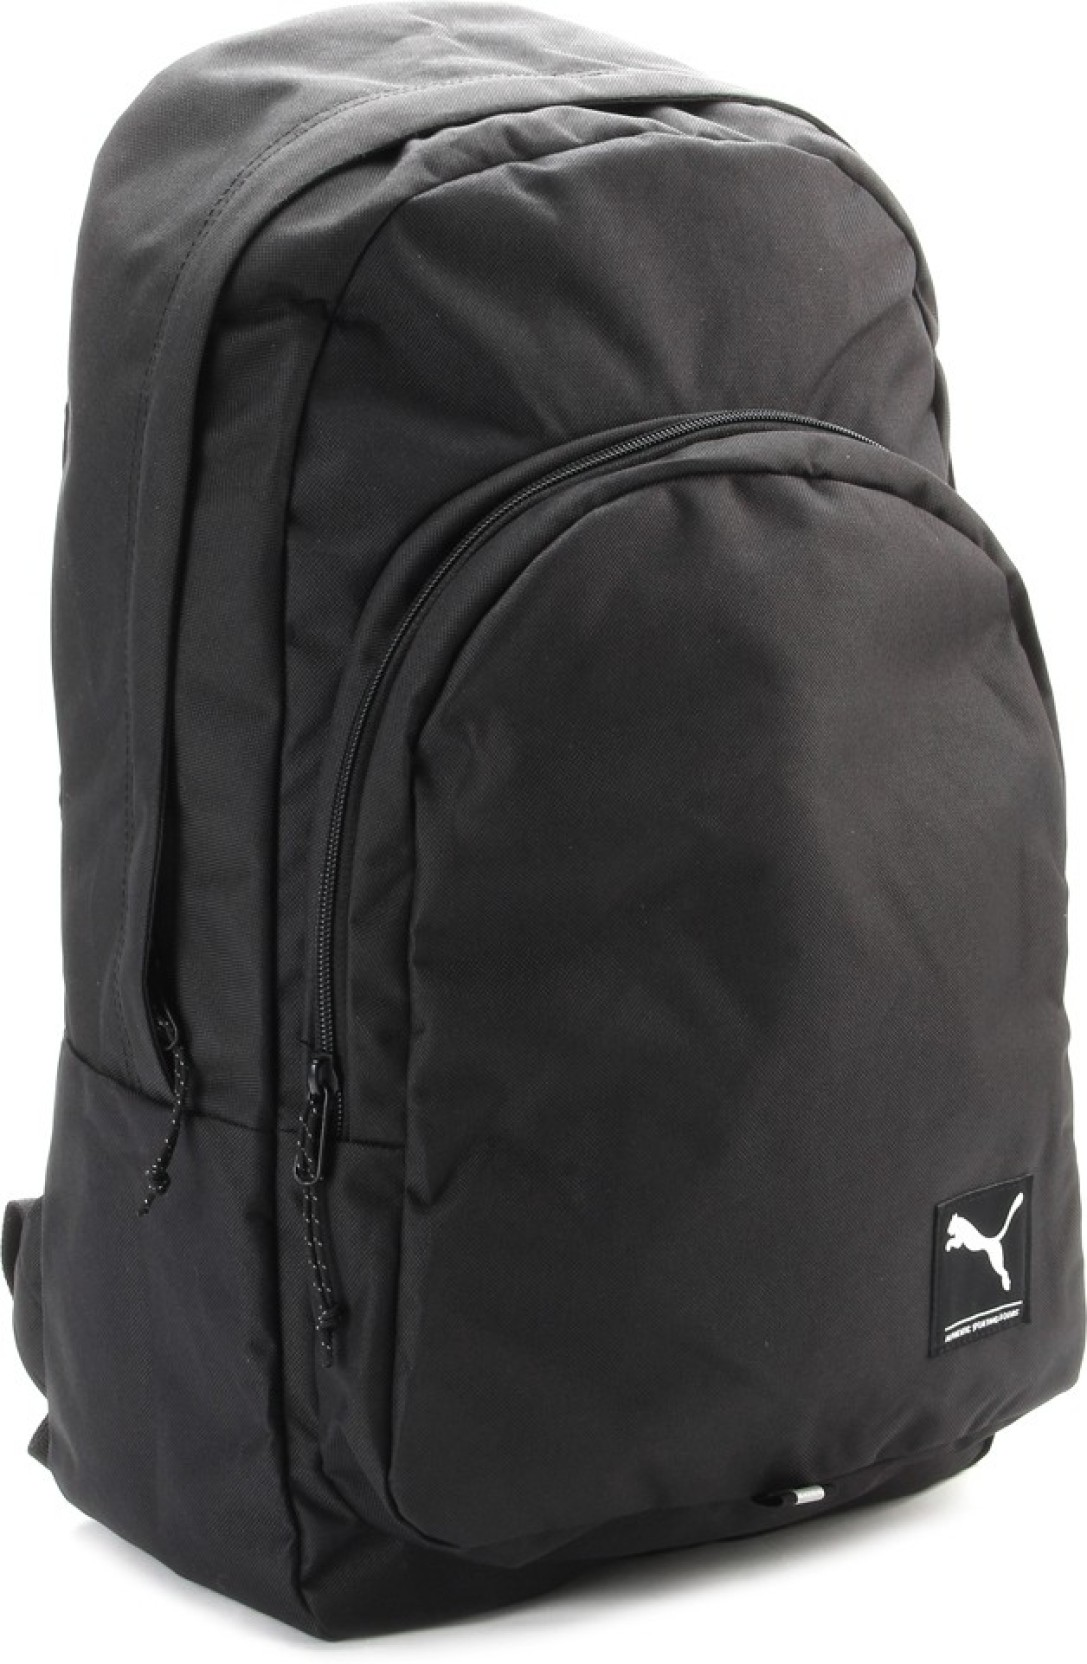 228e439422 Puma Academy Backpack Black - Price in India